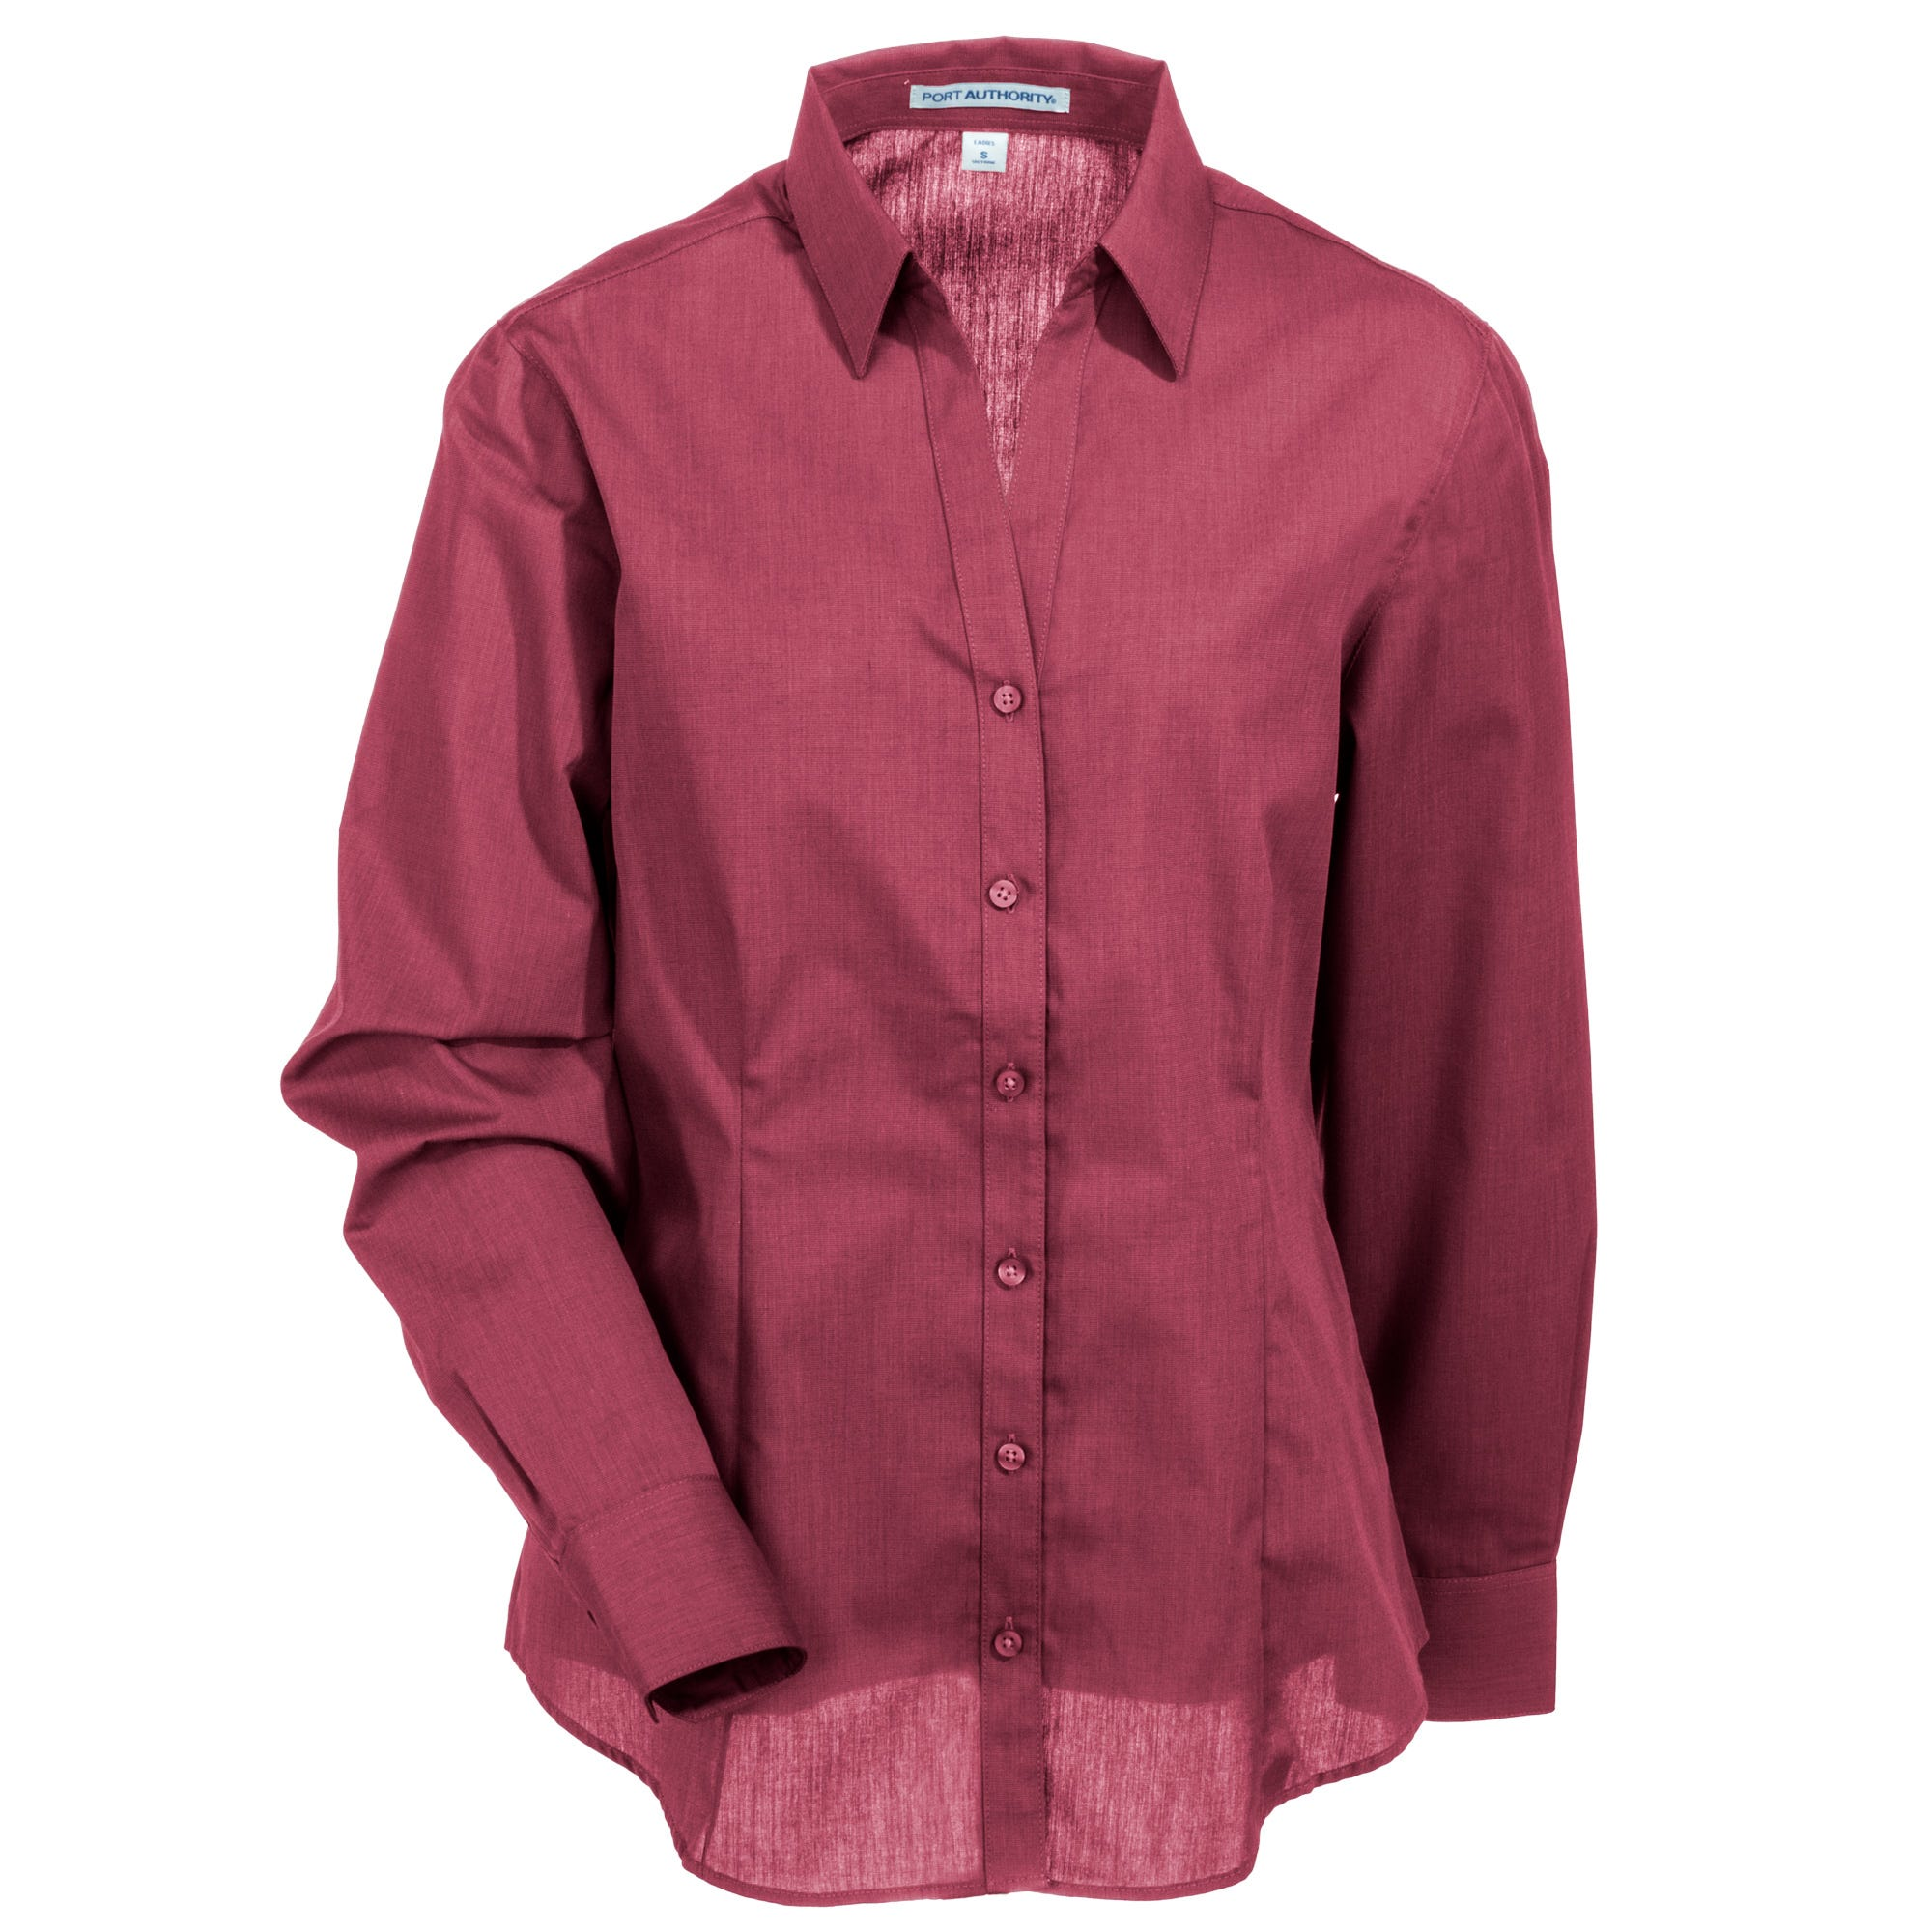 Port Authority Women's L640 RDO Red Oxide Button Down Easy Care Crosshatch Shirt